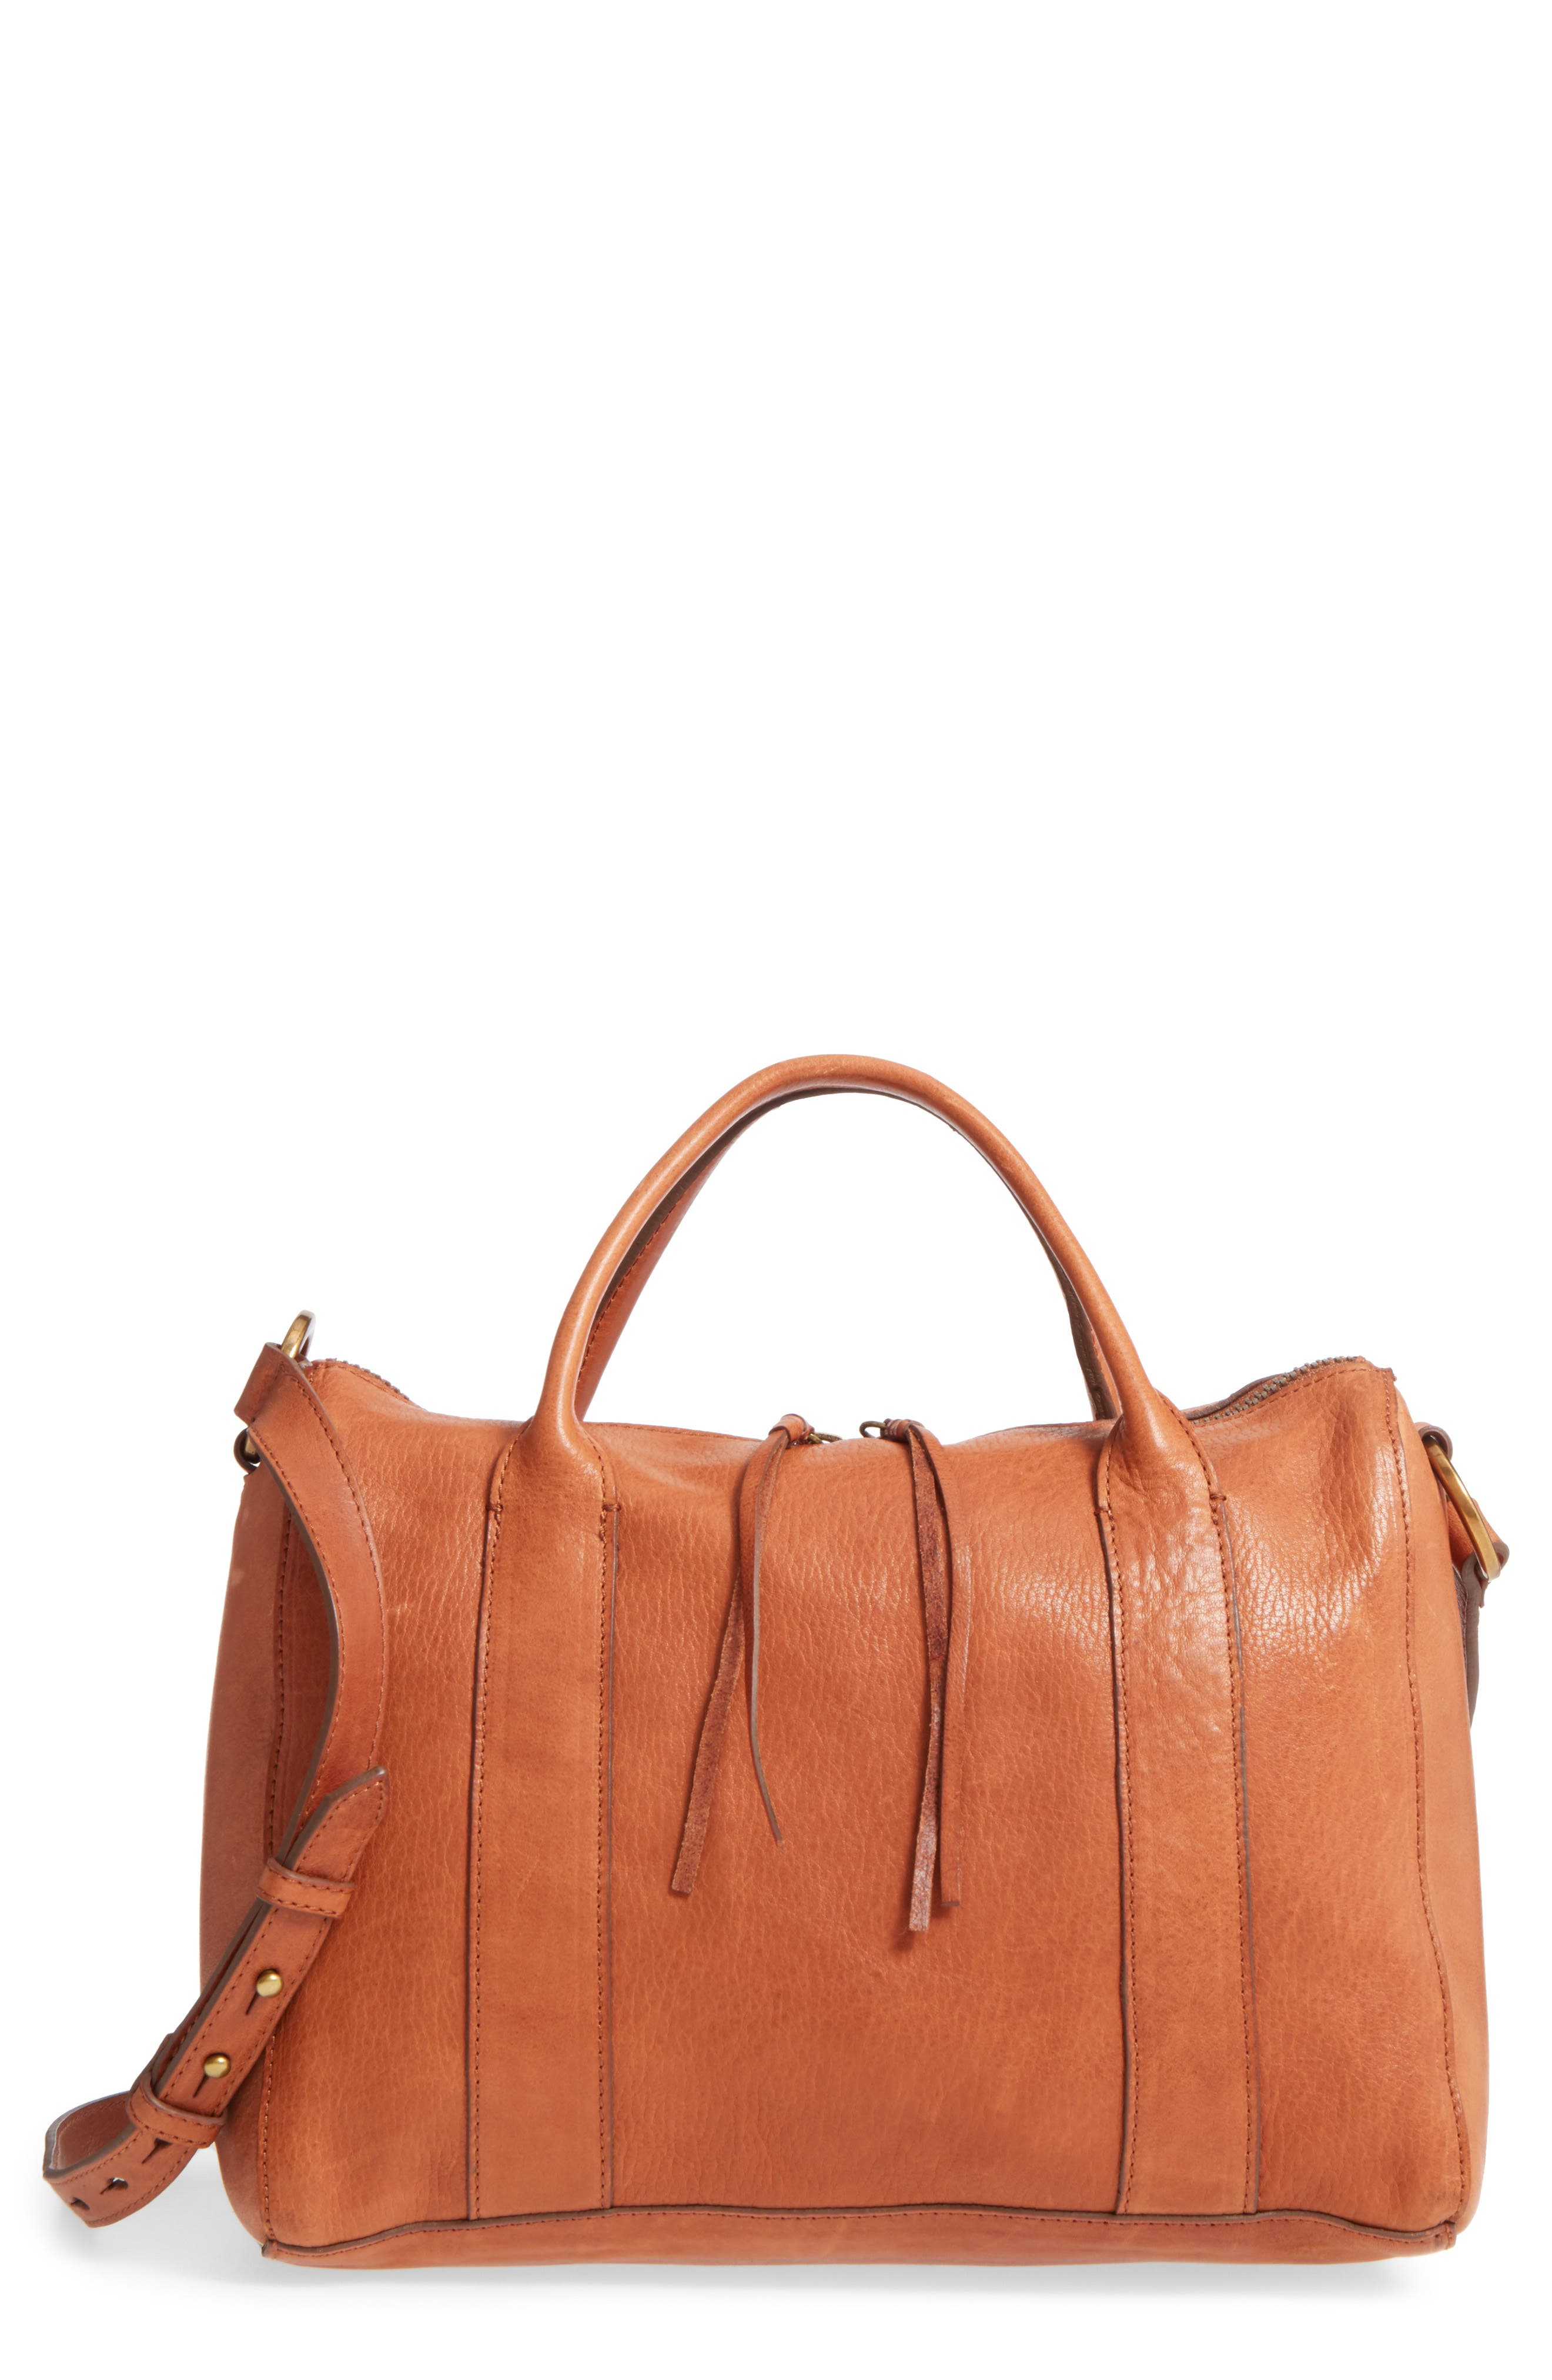 O-RING LEATHER SATCHEL - BROWN